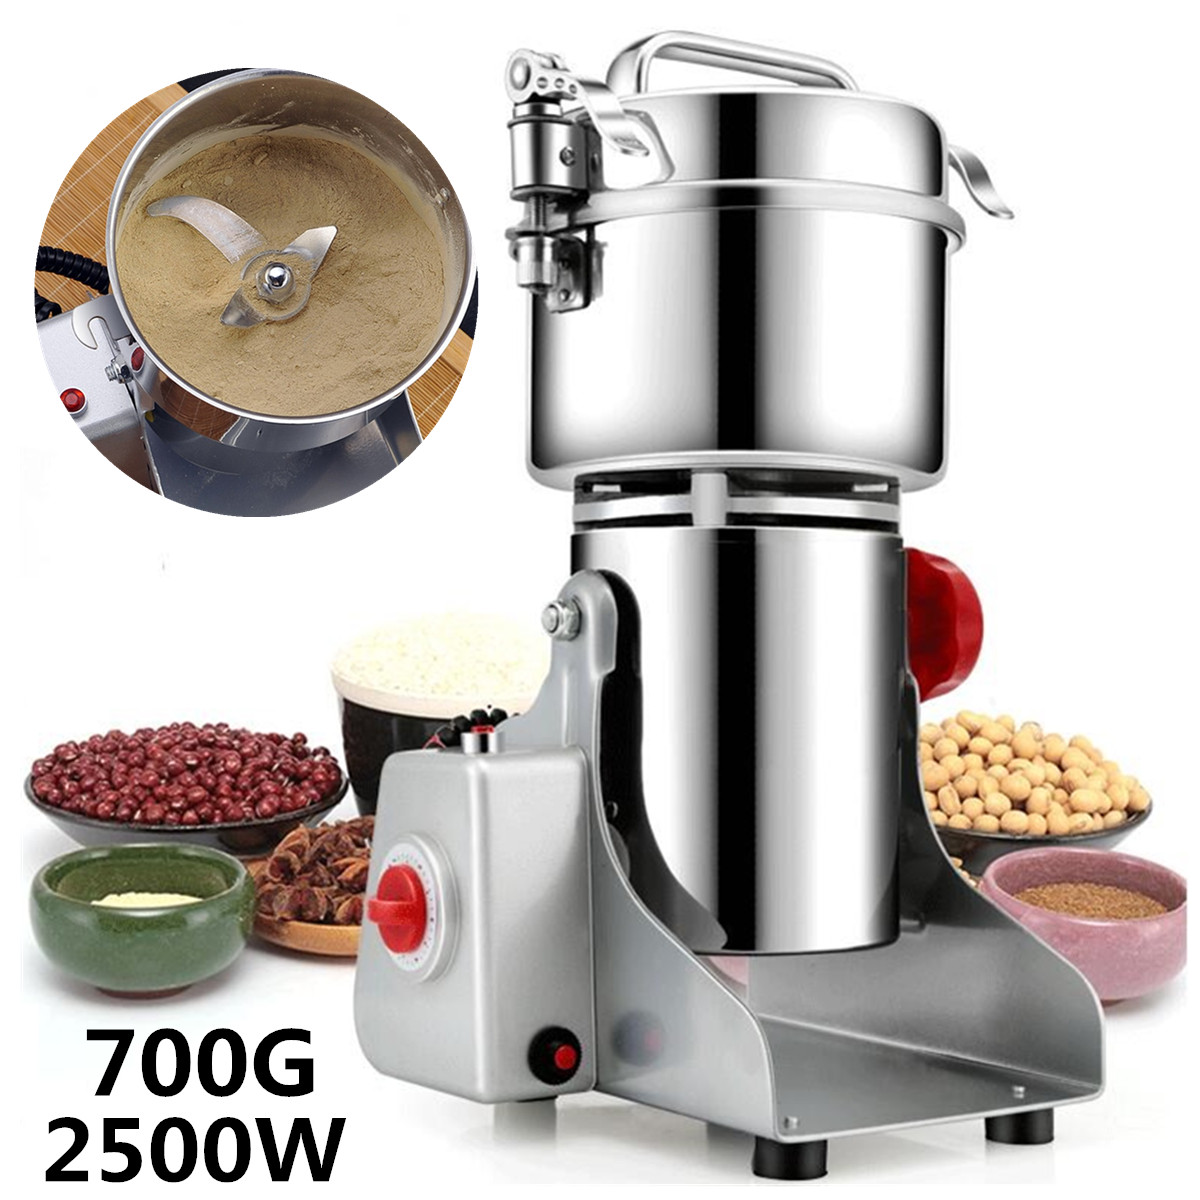 2500W Heavy Stainless Steel Large Powdering Machine Superfine Grinder Traditional Chinese Medicine Grinder Home Electric Blender2500W Heavy Stainless Steel Large Powdering Machine Superfine Grinder Traditional Chinese Medicine Grinder Home Electric Blender